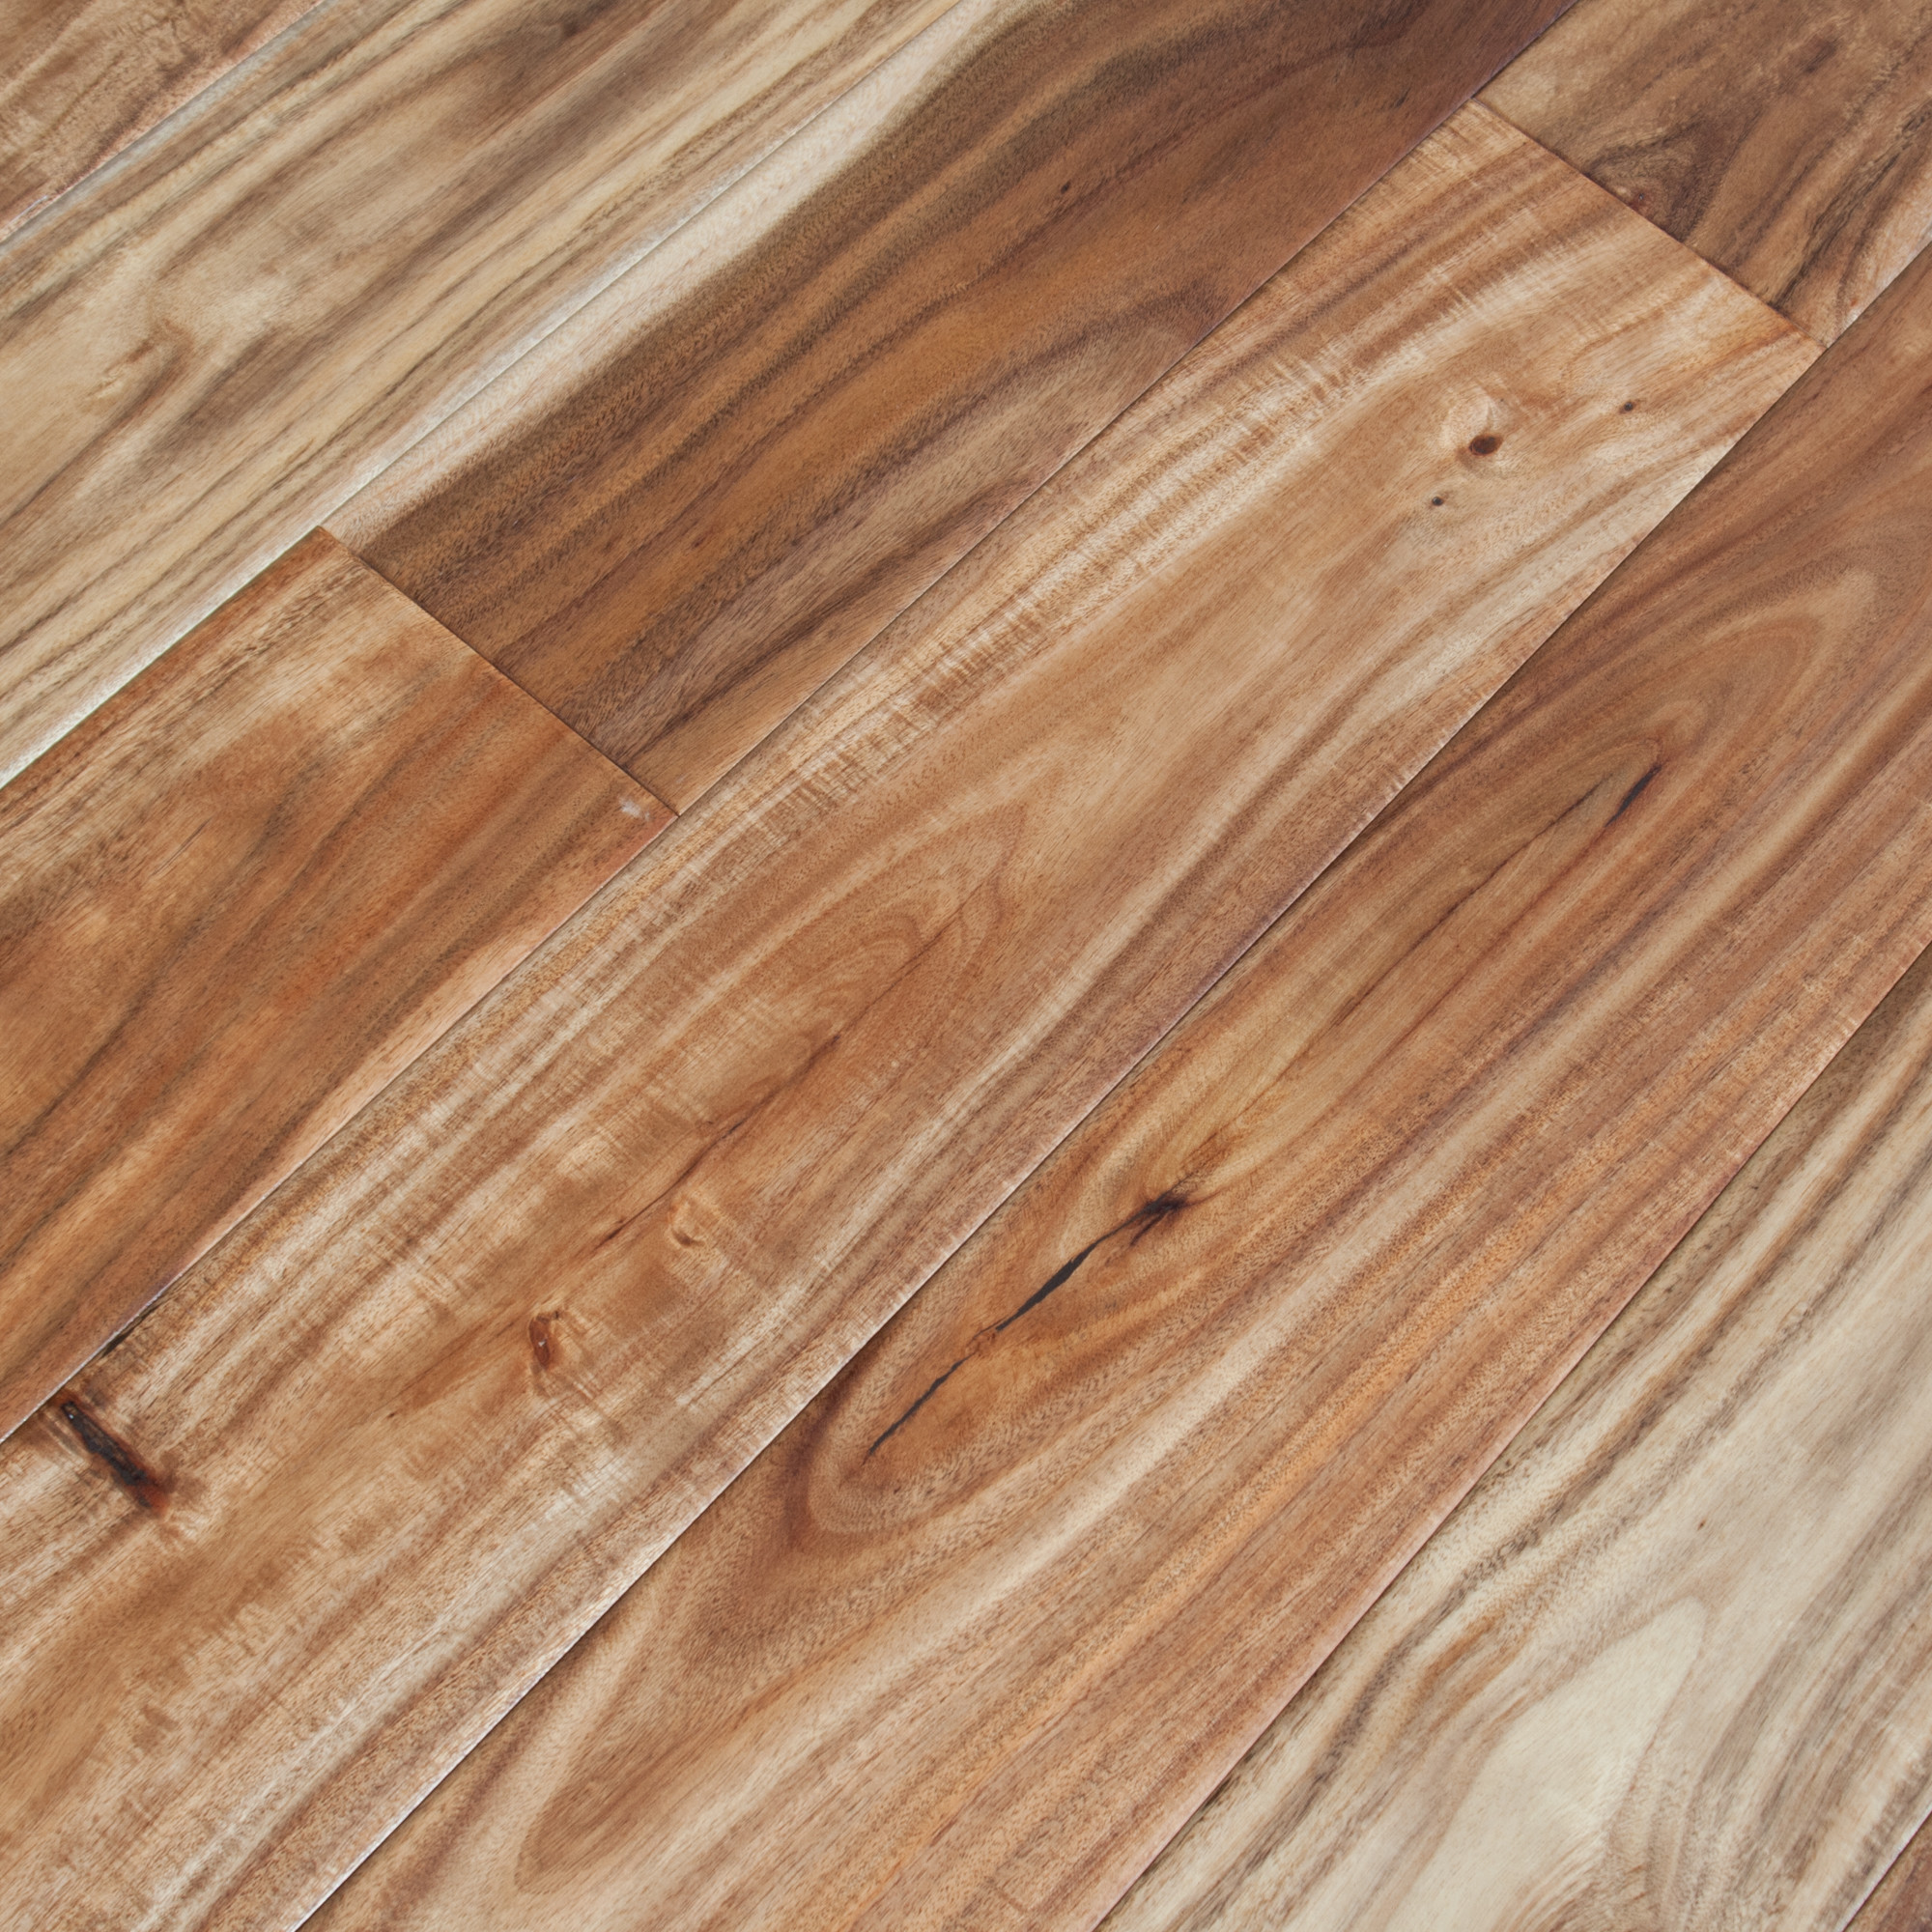 3 4 5 hardwood flooring of 9 mile creek acacia hand scraped acacia confusa wood floors throughout acacia handscraped natural hardwood flooring